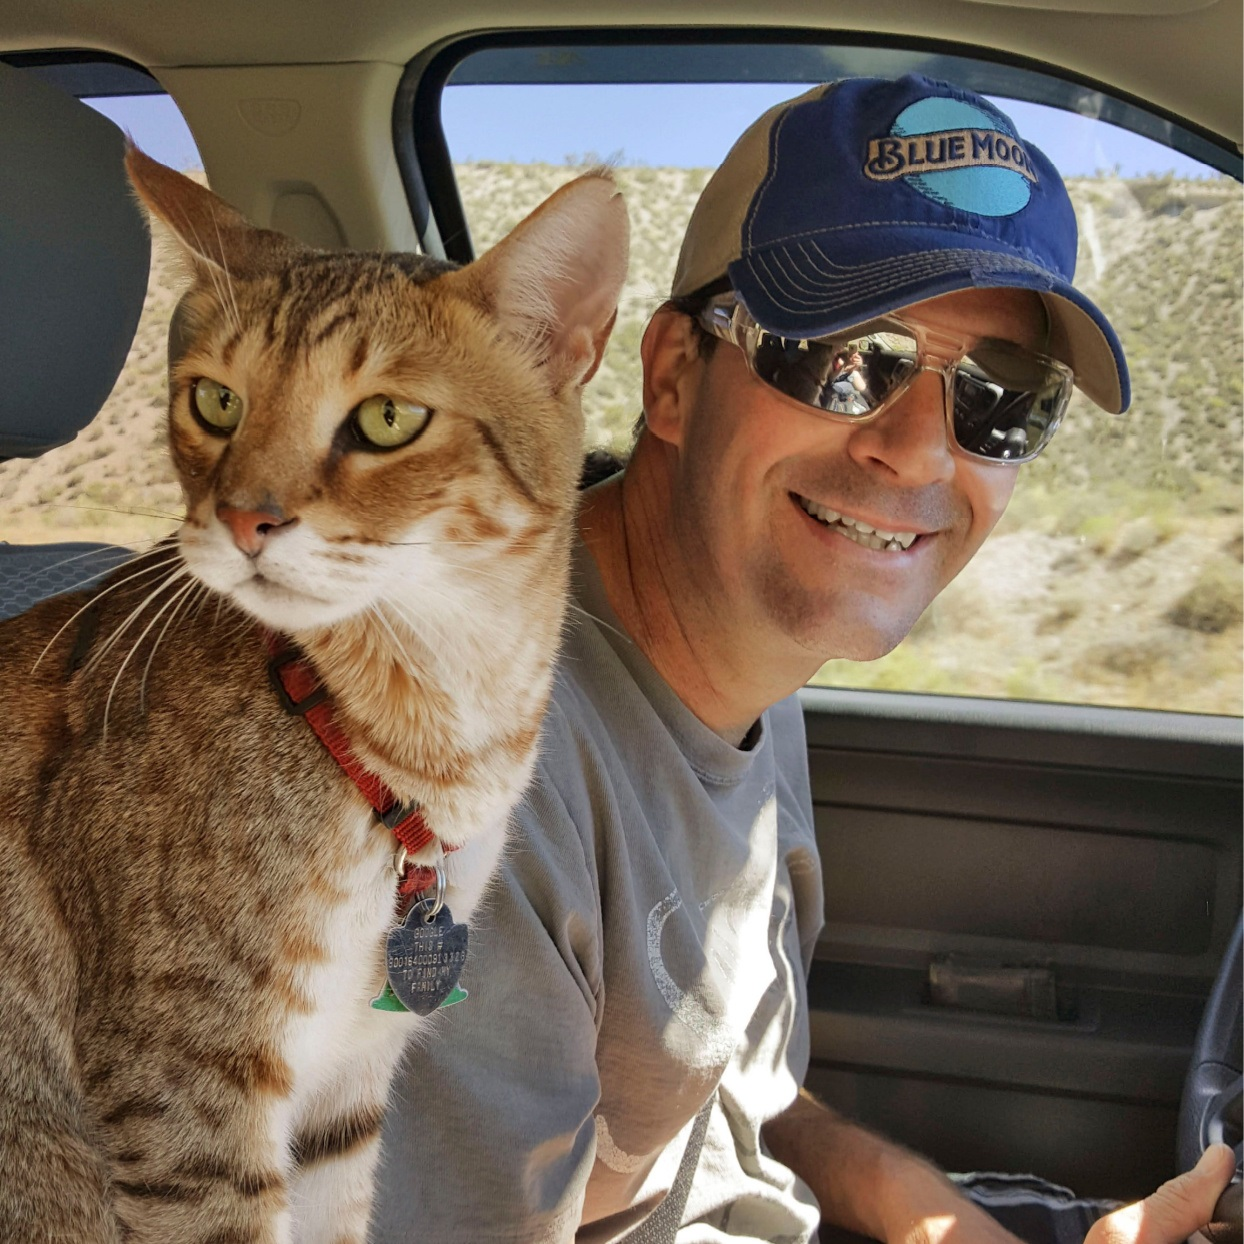 Moose the cat and Dave